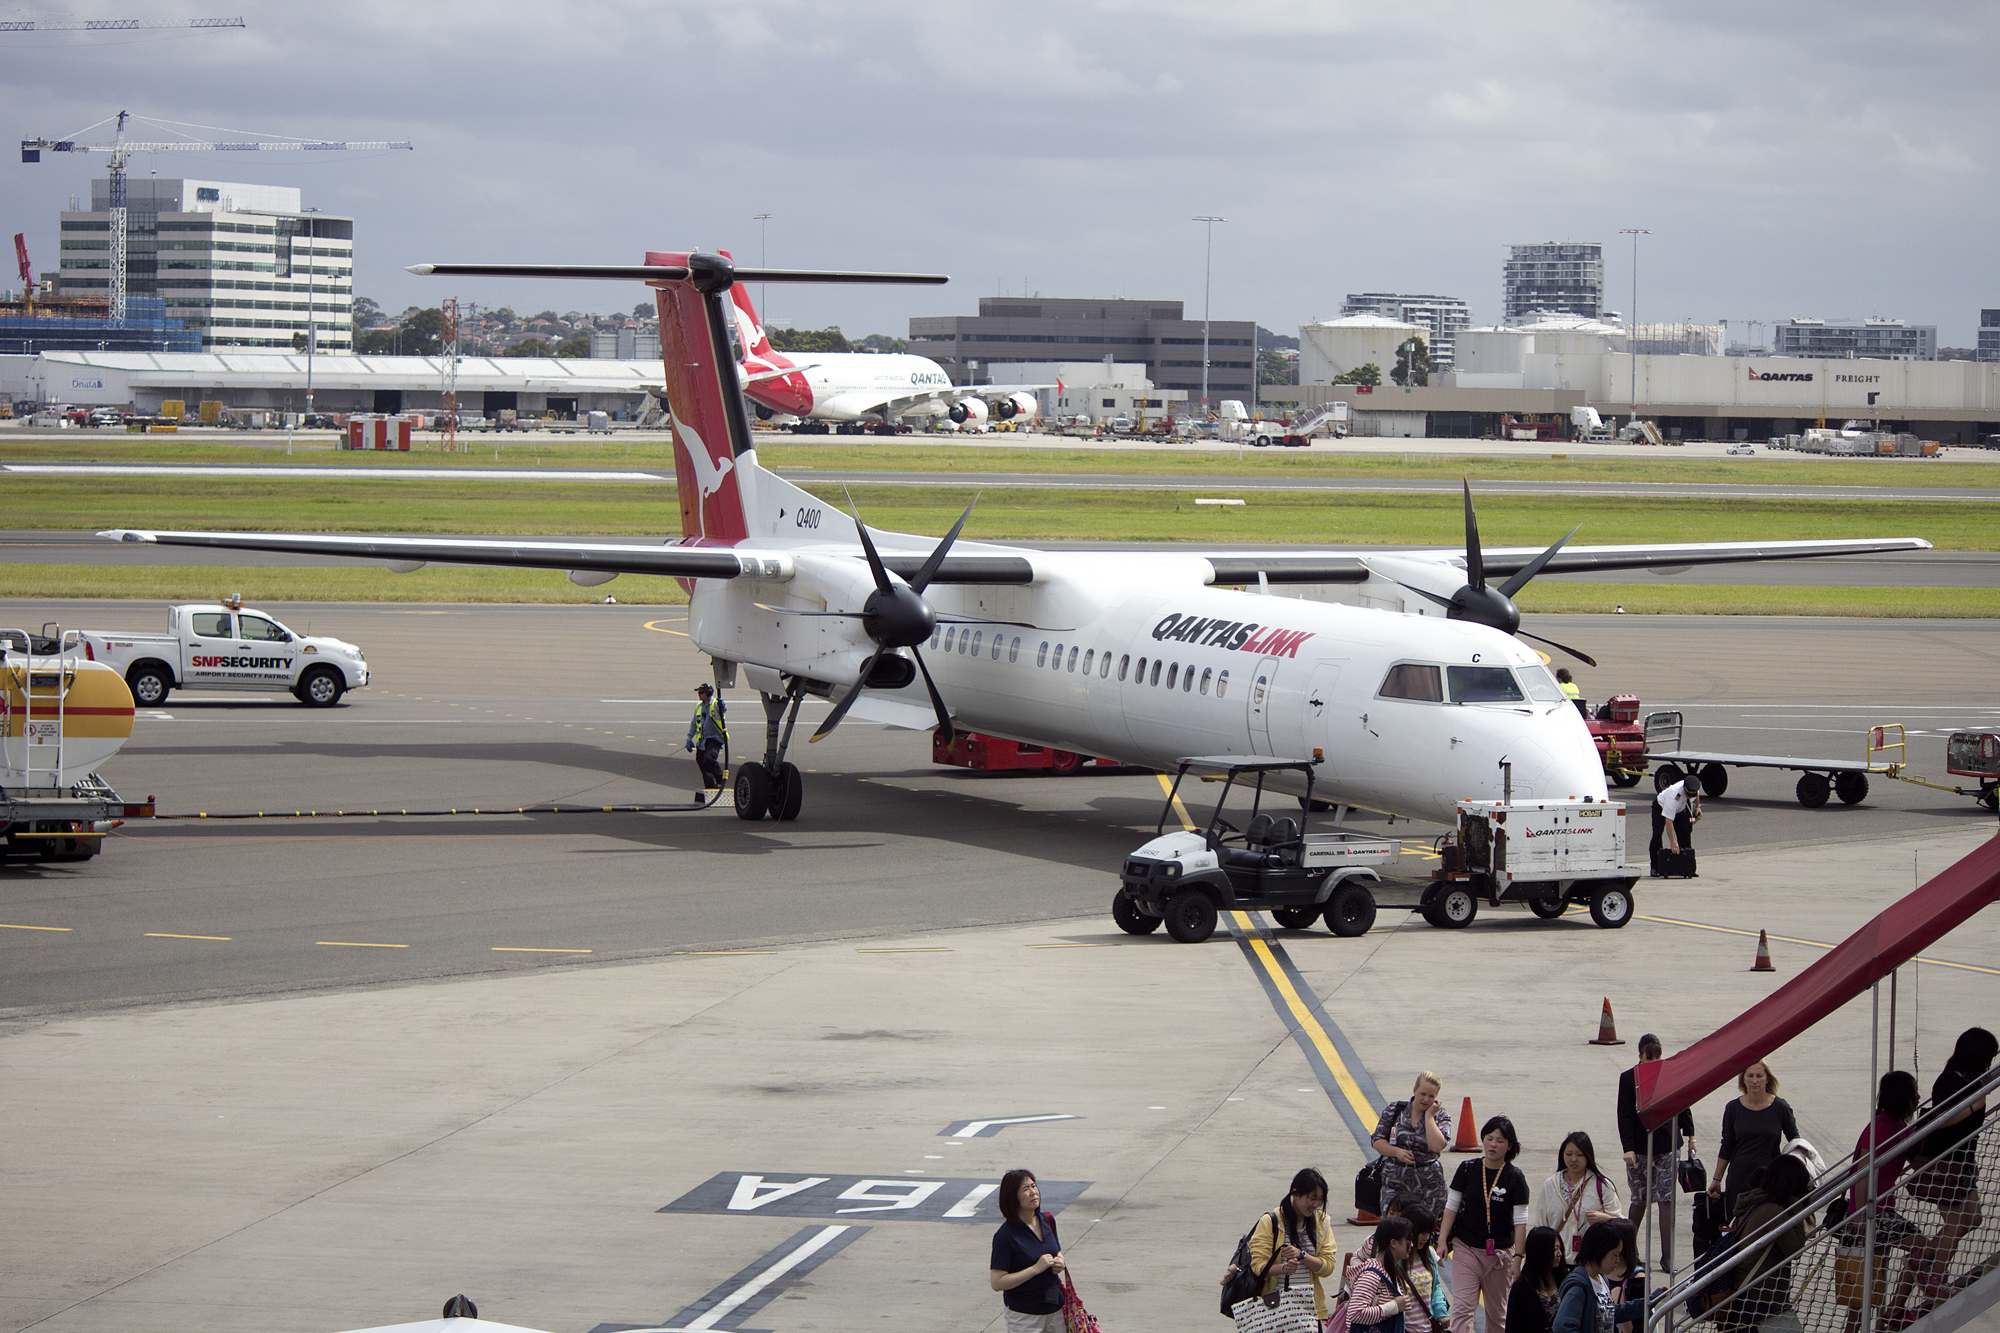 description qantaslink vh qoc bombardier dash 8 q400 at the domestic